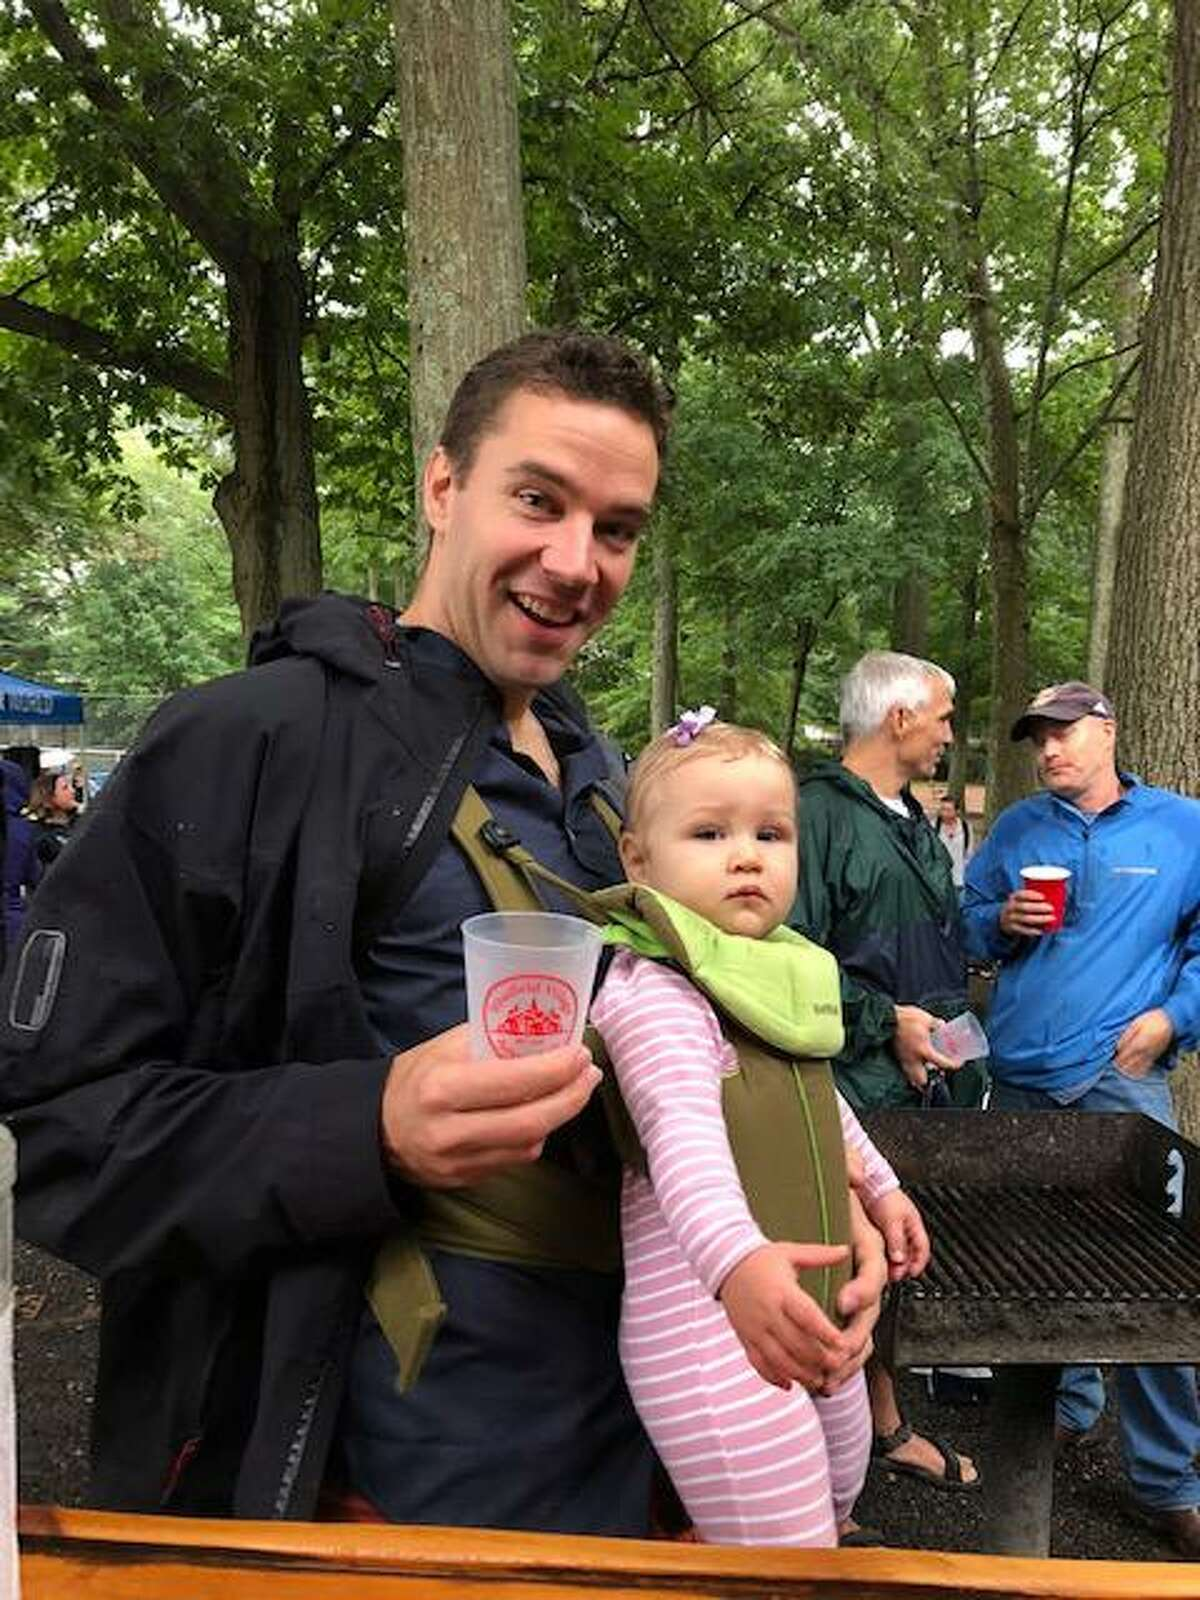 Brian Kinsely and his daughter, Eleanor, enjoying the festivities at the 2018 SVA Party in the Park.